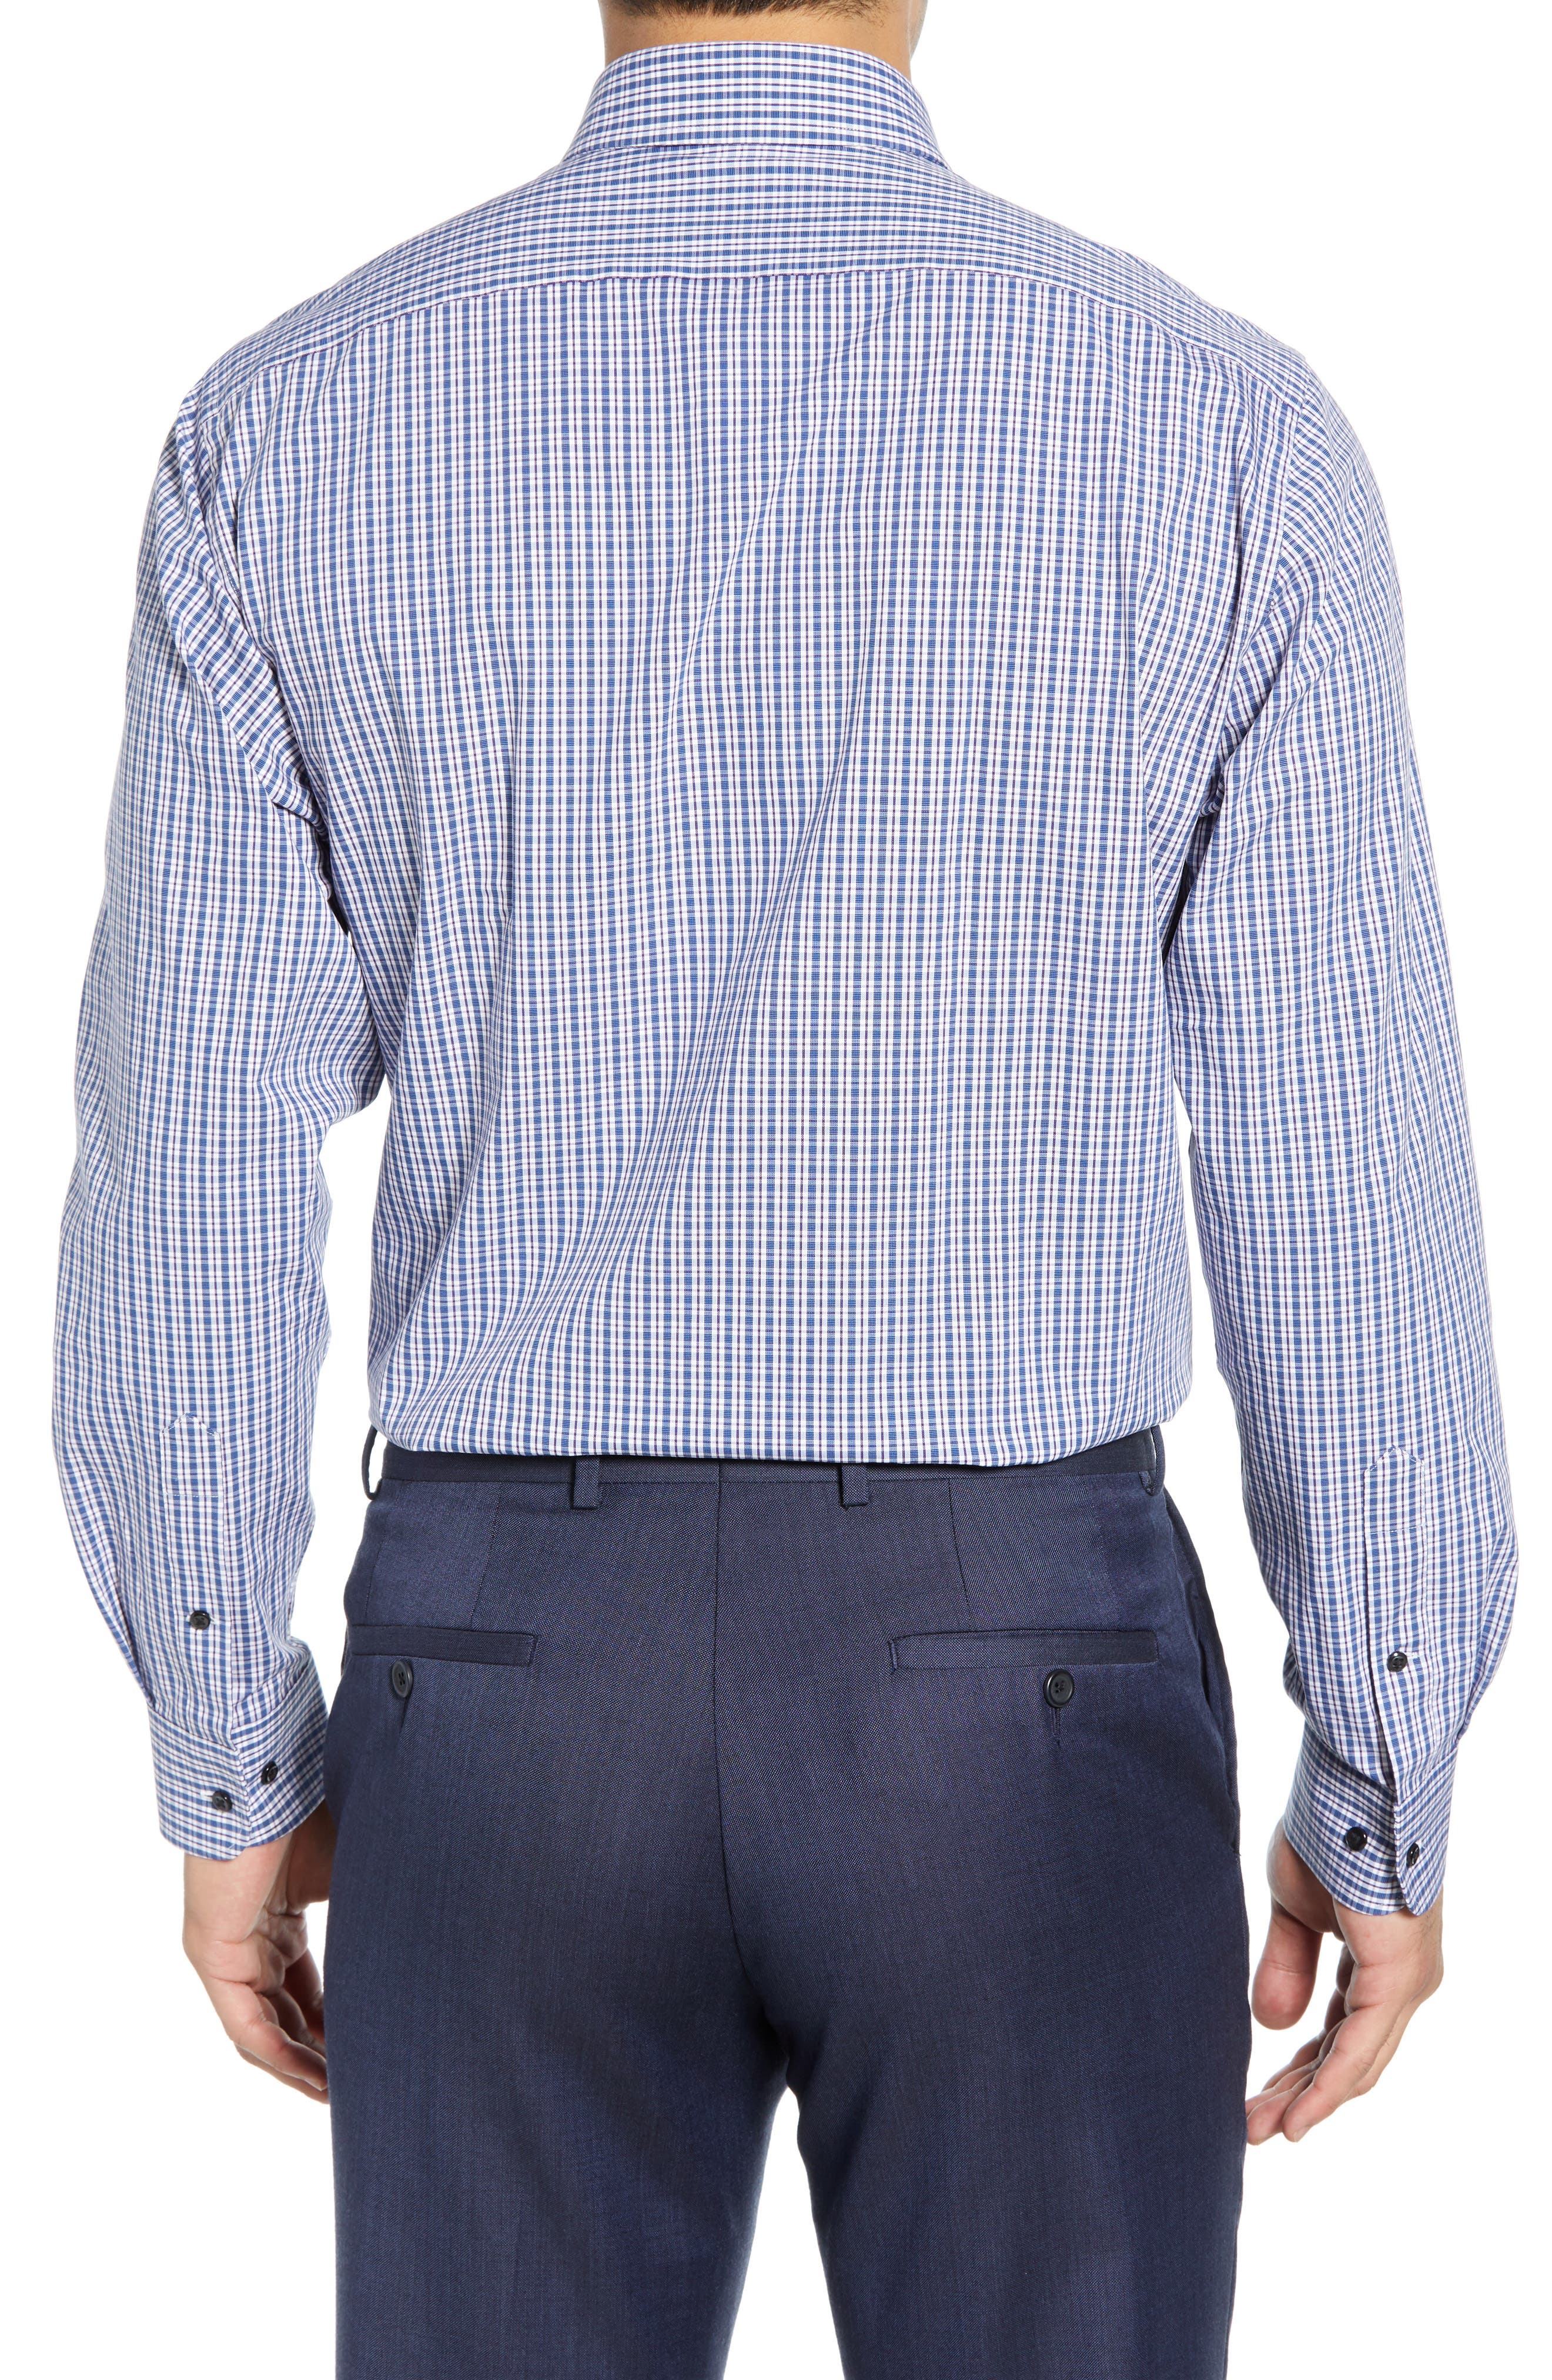 Tech-Smart Traditional Fit Plaid Stretch Dress Shirt,                             Alternate thumbnail 3, color,                             NAVY DUSK